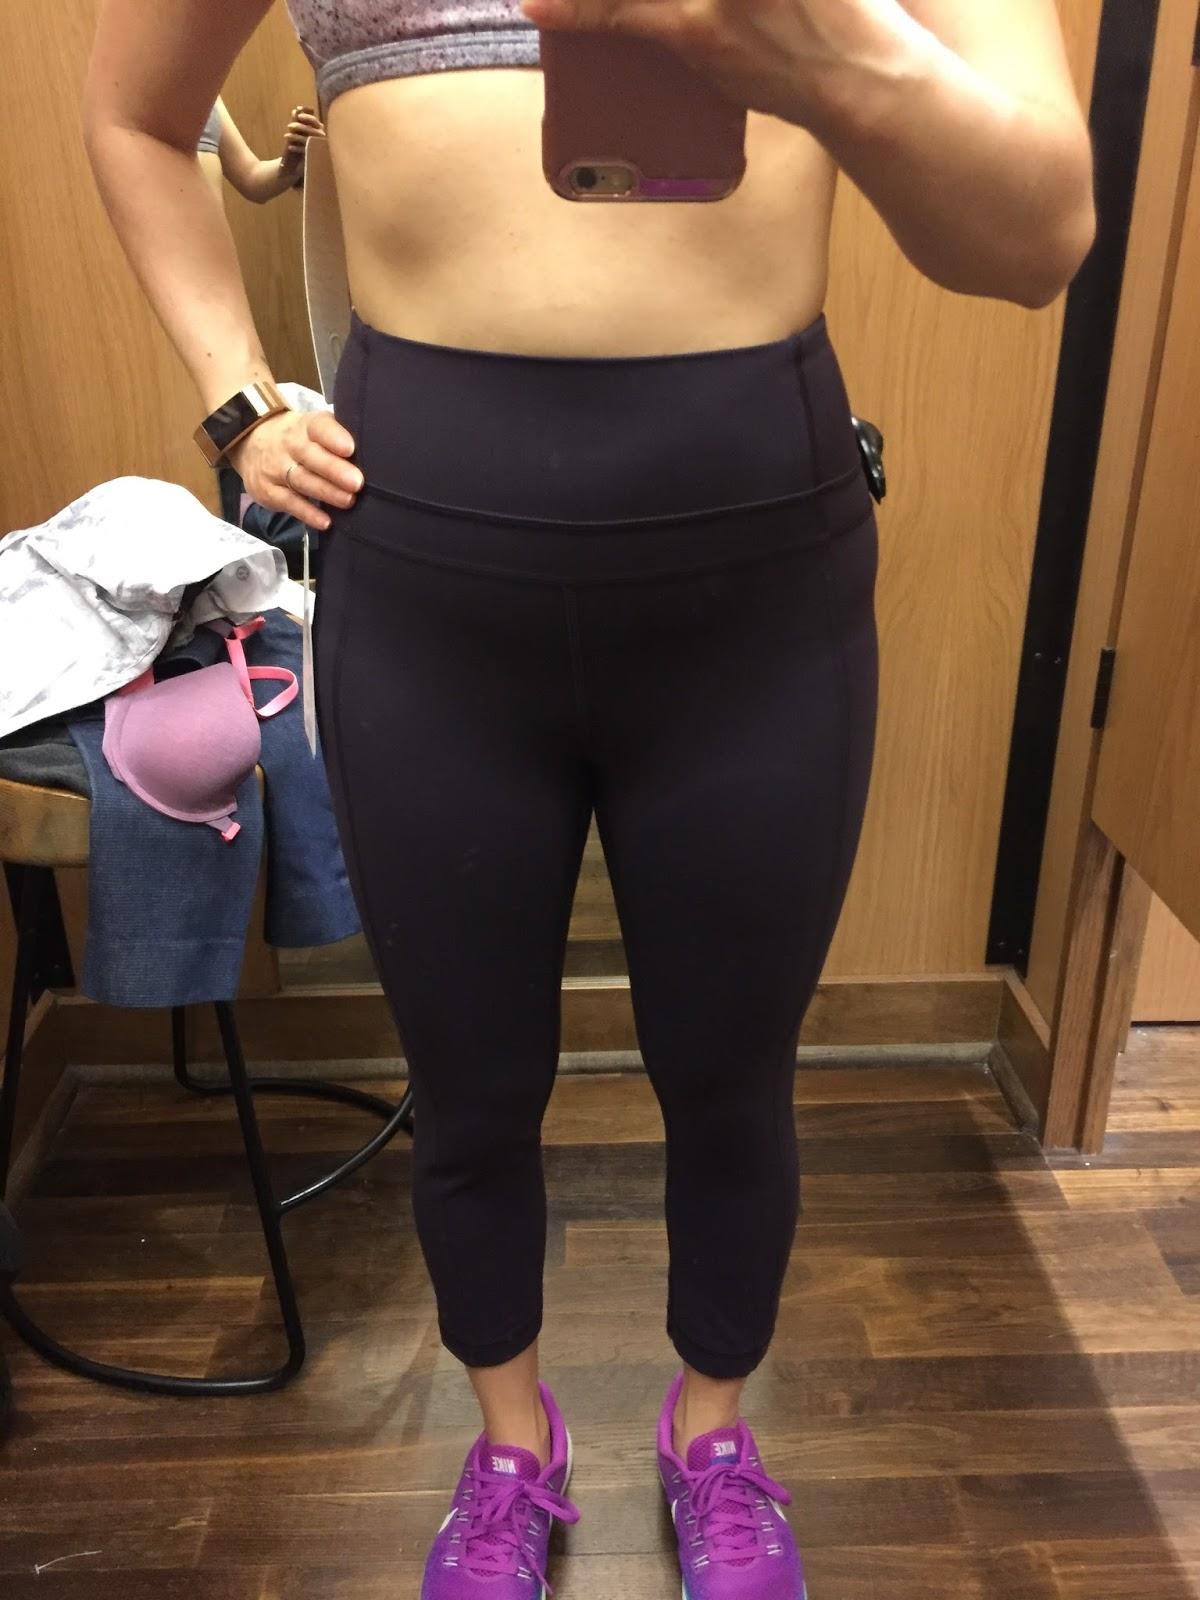 fc49ef4f778f12 Petite Impact: Fit Review Friday! Sculpt Tank II, Speed Short ...